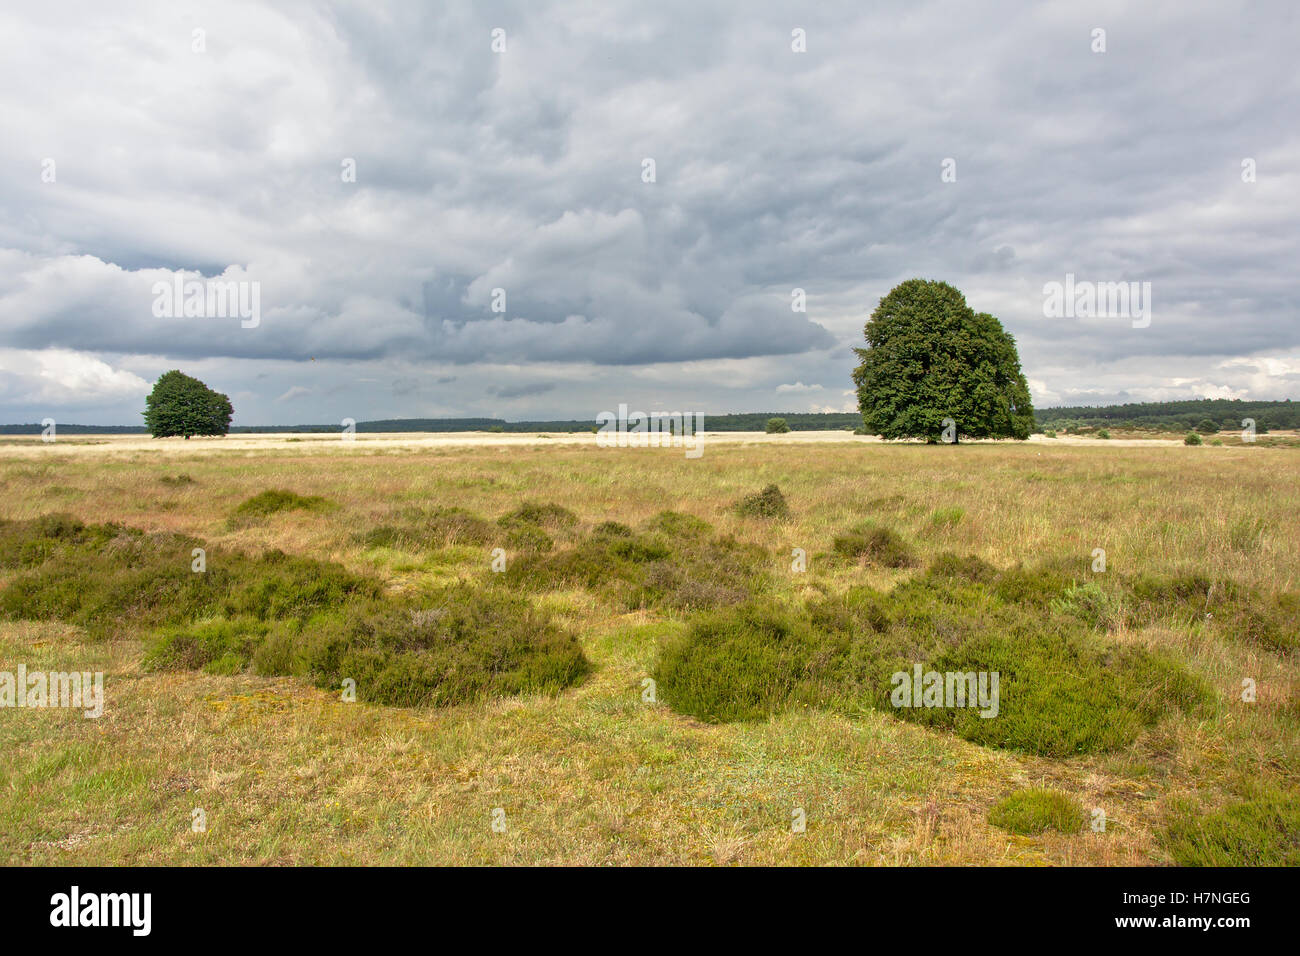 Cloudy heath landscape at Hoge Veluwe national parc, the Netherlands - Stock Image